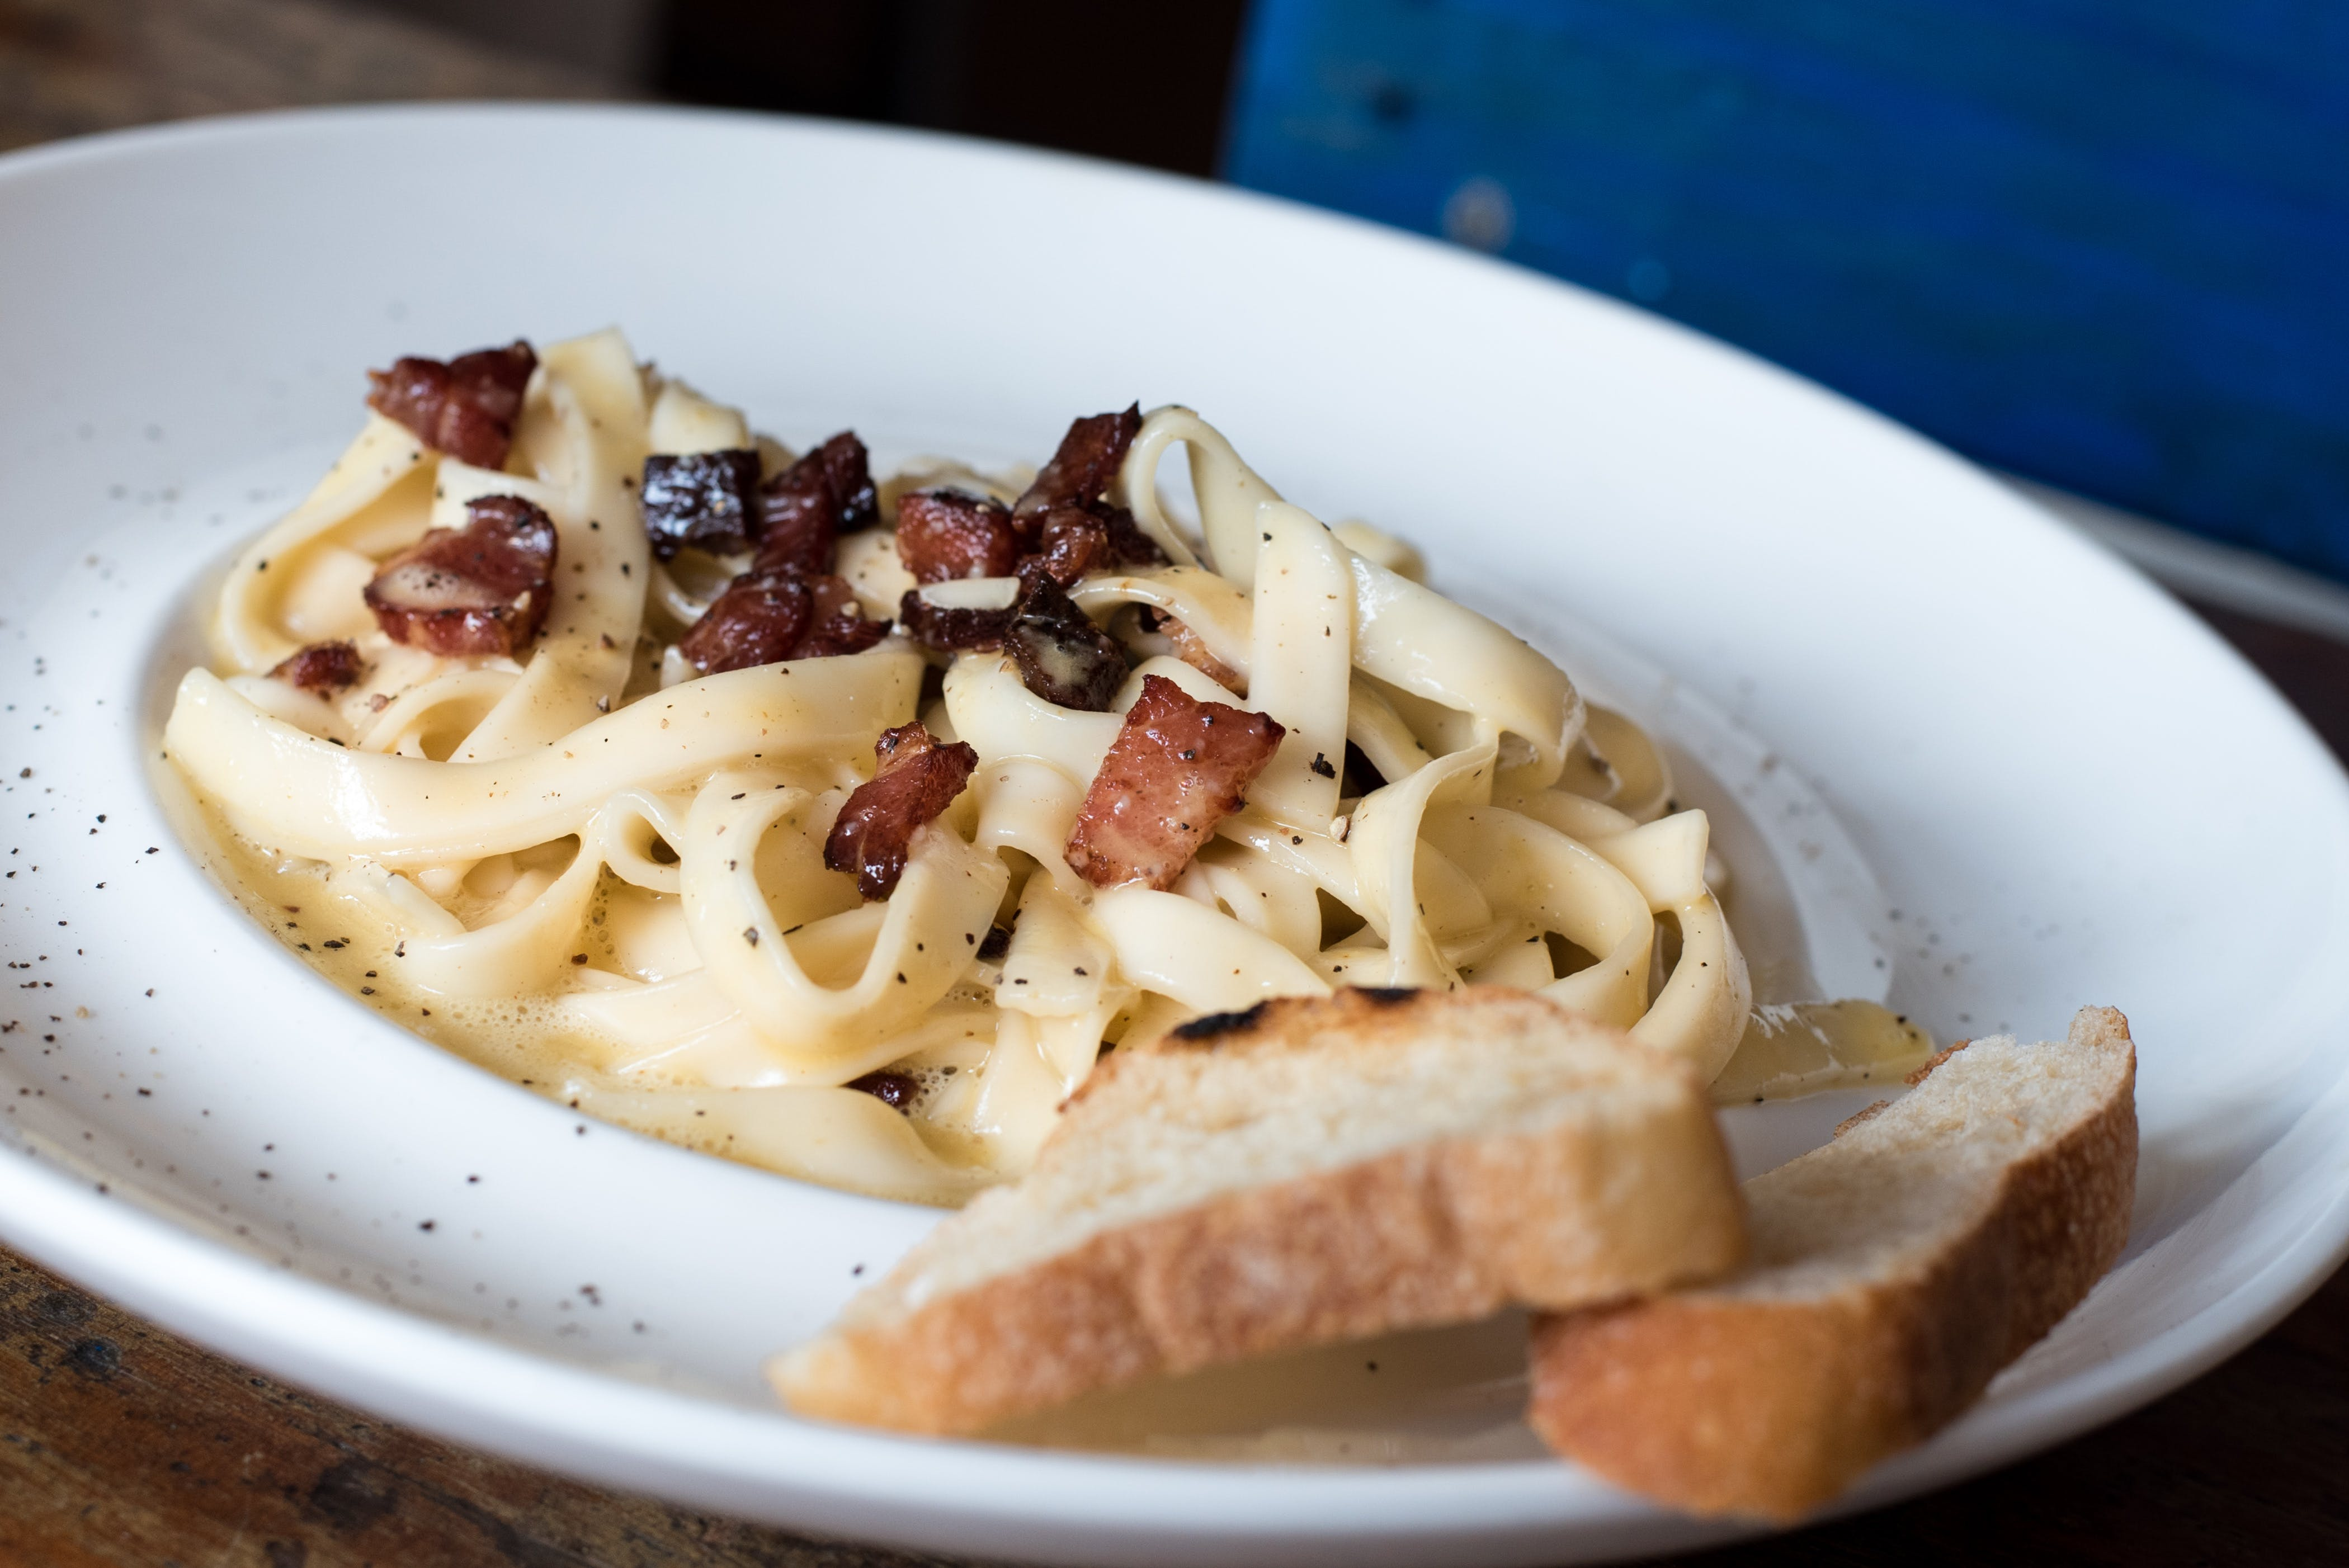 Pasta Dish With Bread on White Ceramic Plate